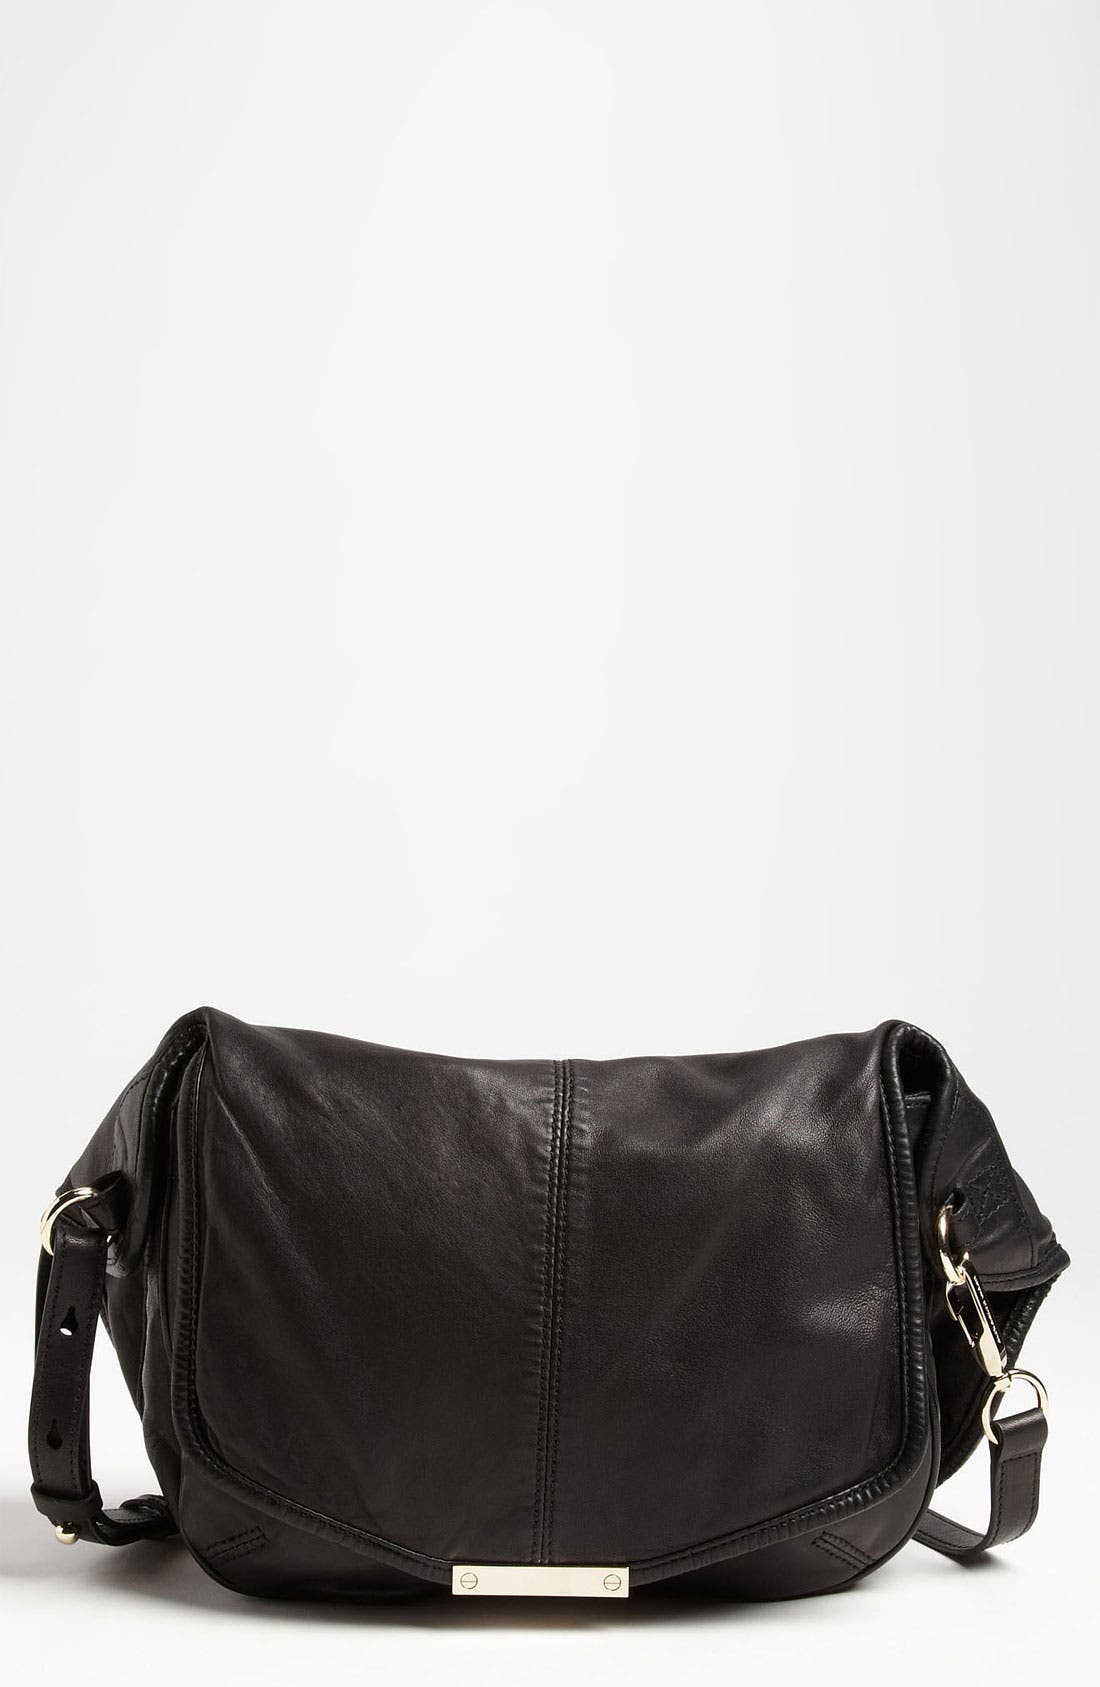 Alternate Image 1 Selected - Alexander Wang 'Iris' Leather Crossbody Bag